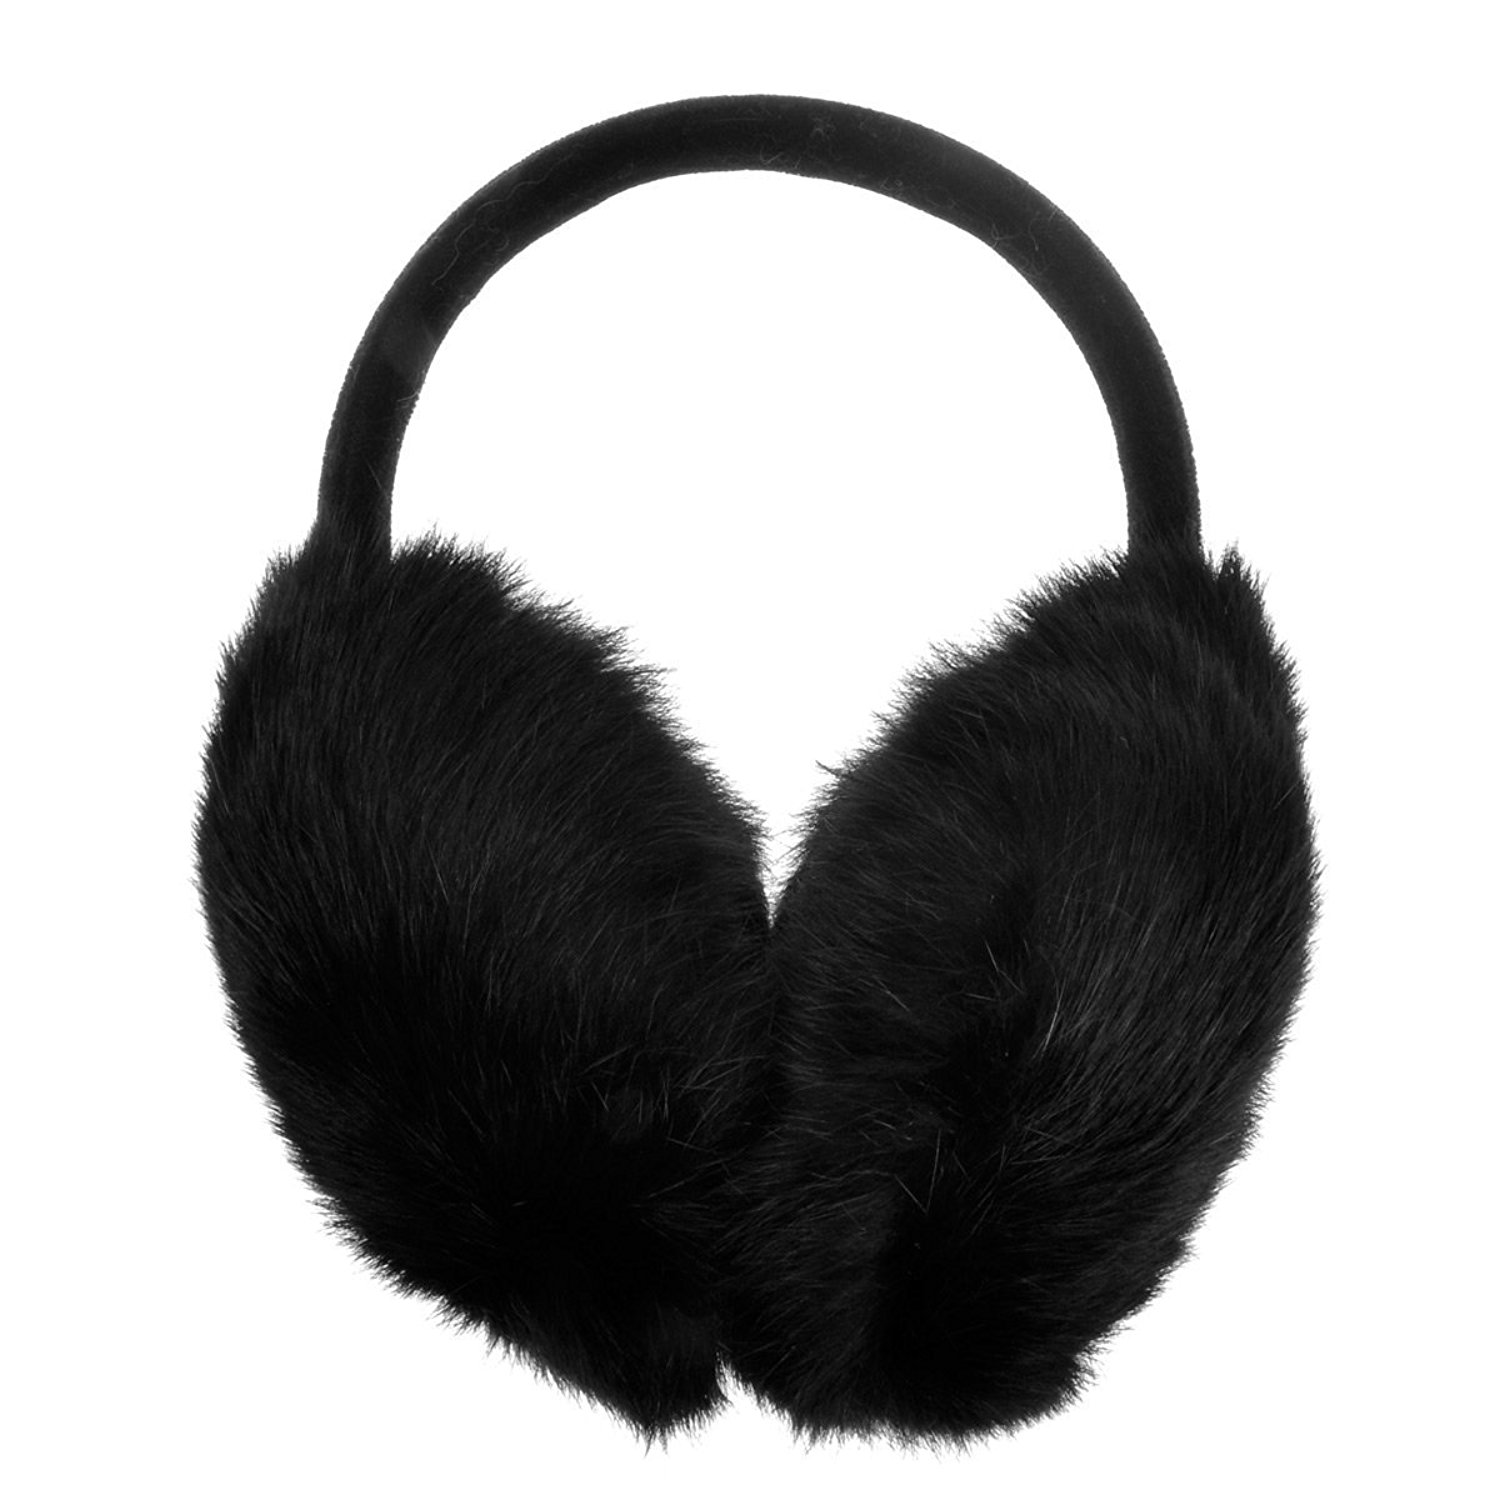 ZLYC Womens Girls Genuine Rabbit Fur EarMuffs Adjustable Ear Warmers ...